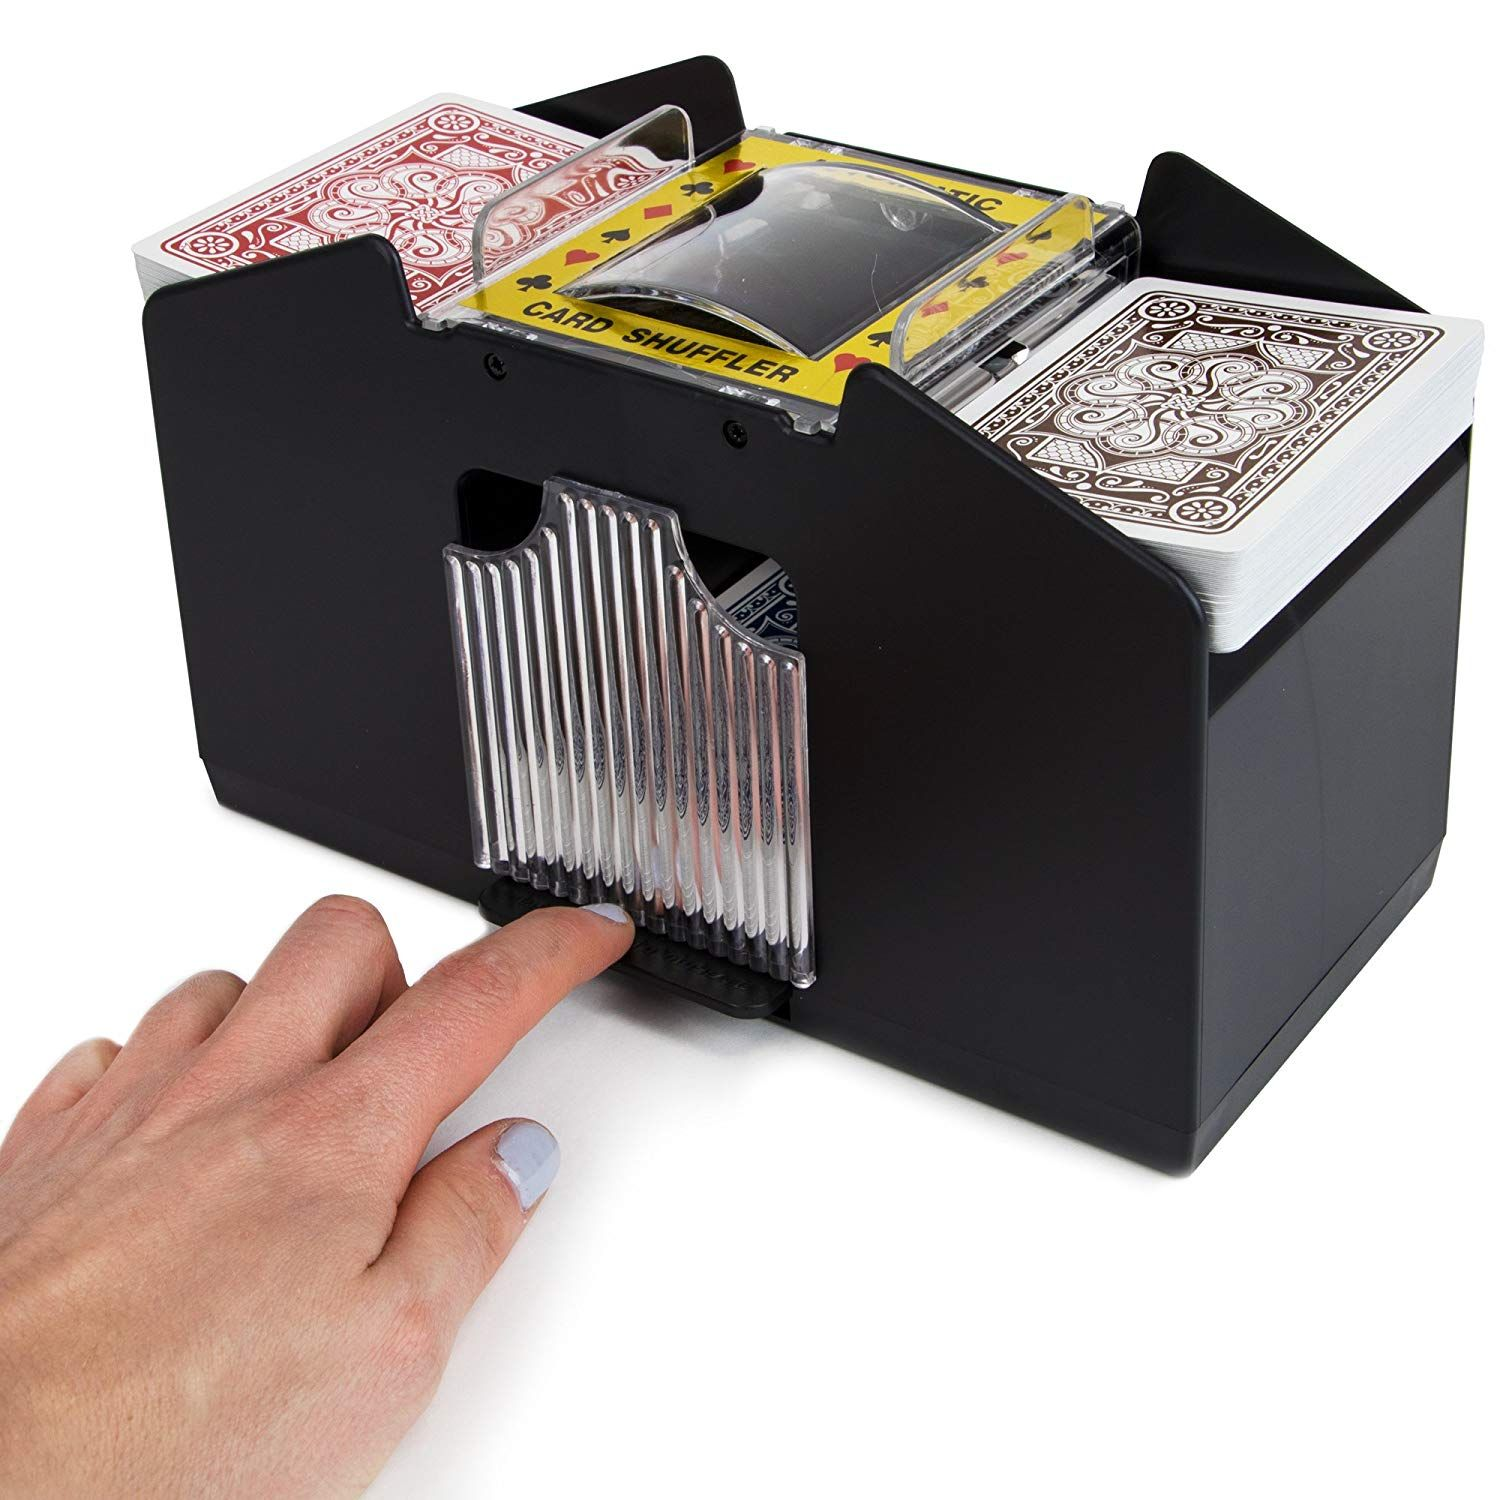 Amazon Com Laser Sports Casino Deluxe Automatic 4 Deck Card Shuffler Sports Outdoors Casino Cards Decorative Boxes